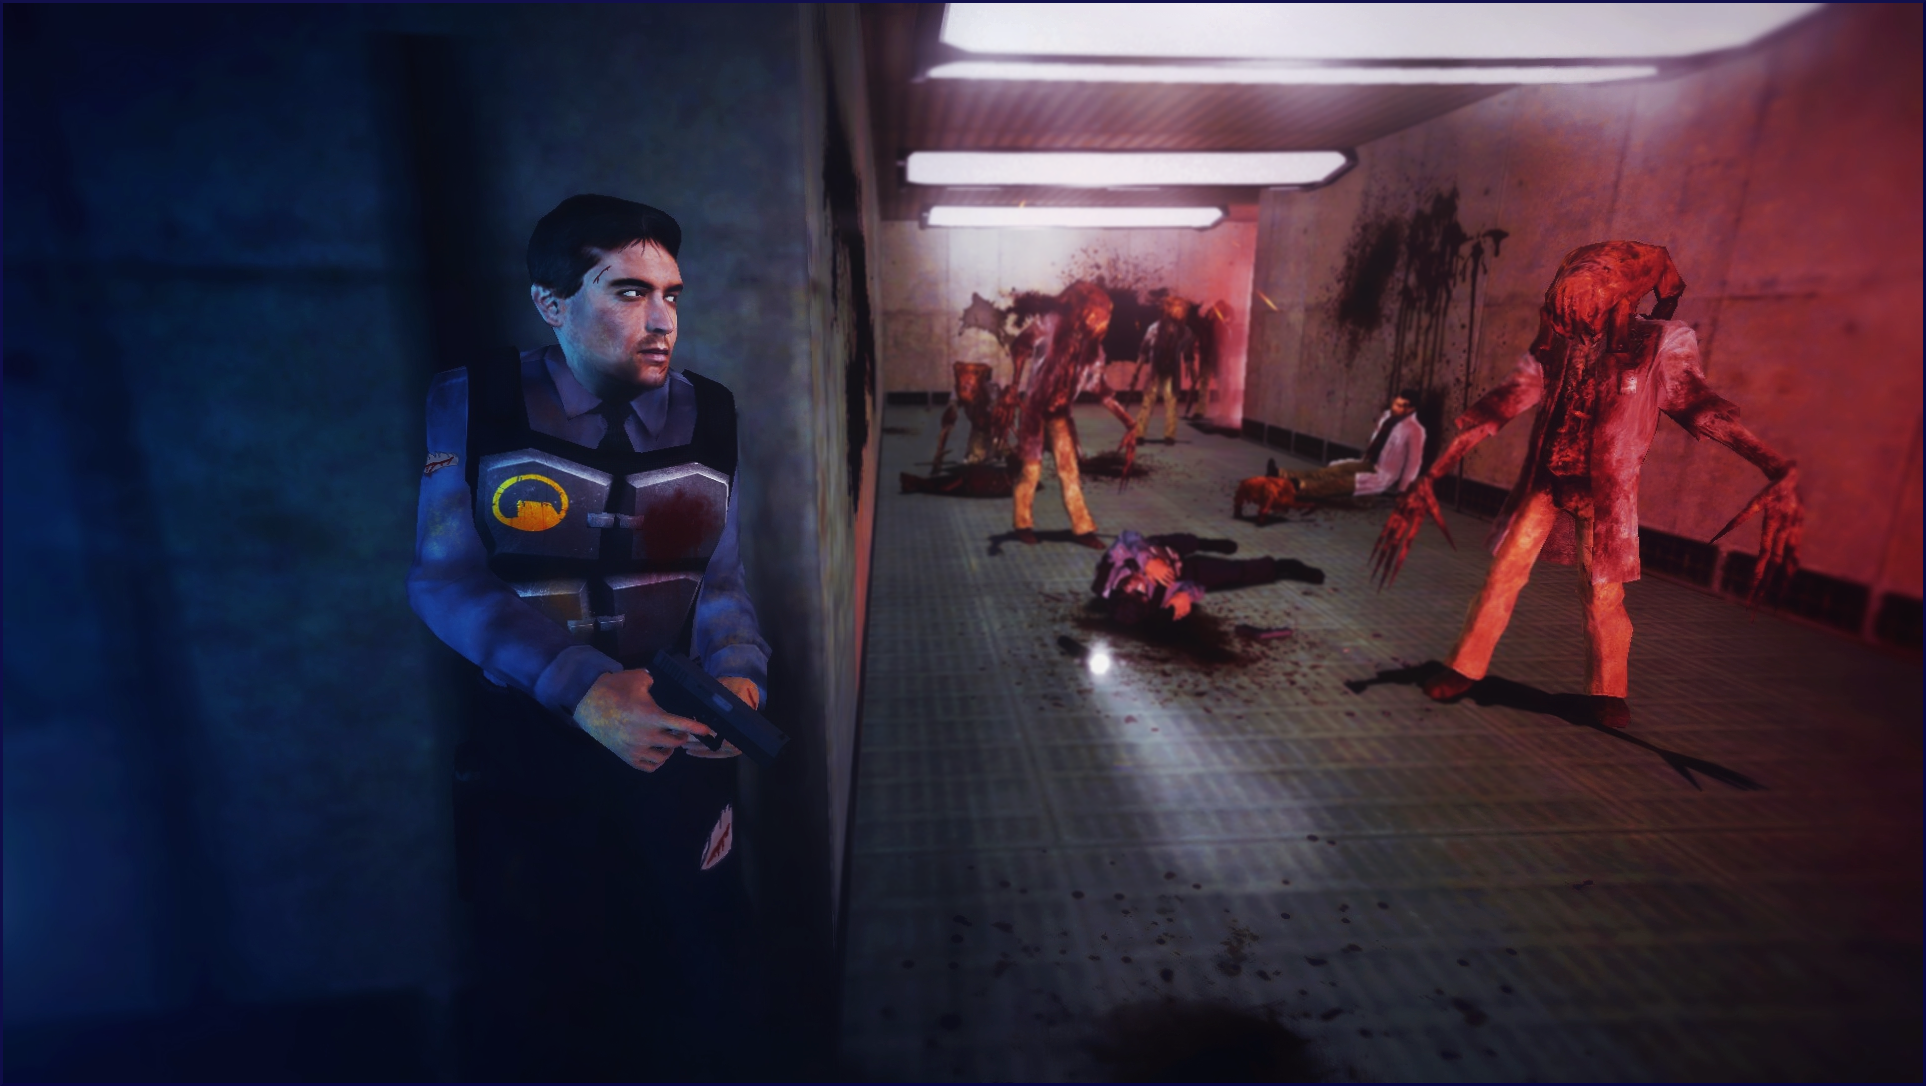 Nightmares from Black Mesa [Blue Shift] by SchwarzDahlie